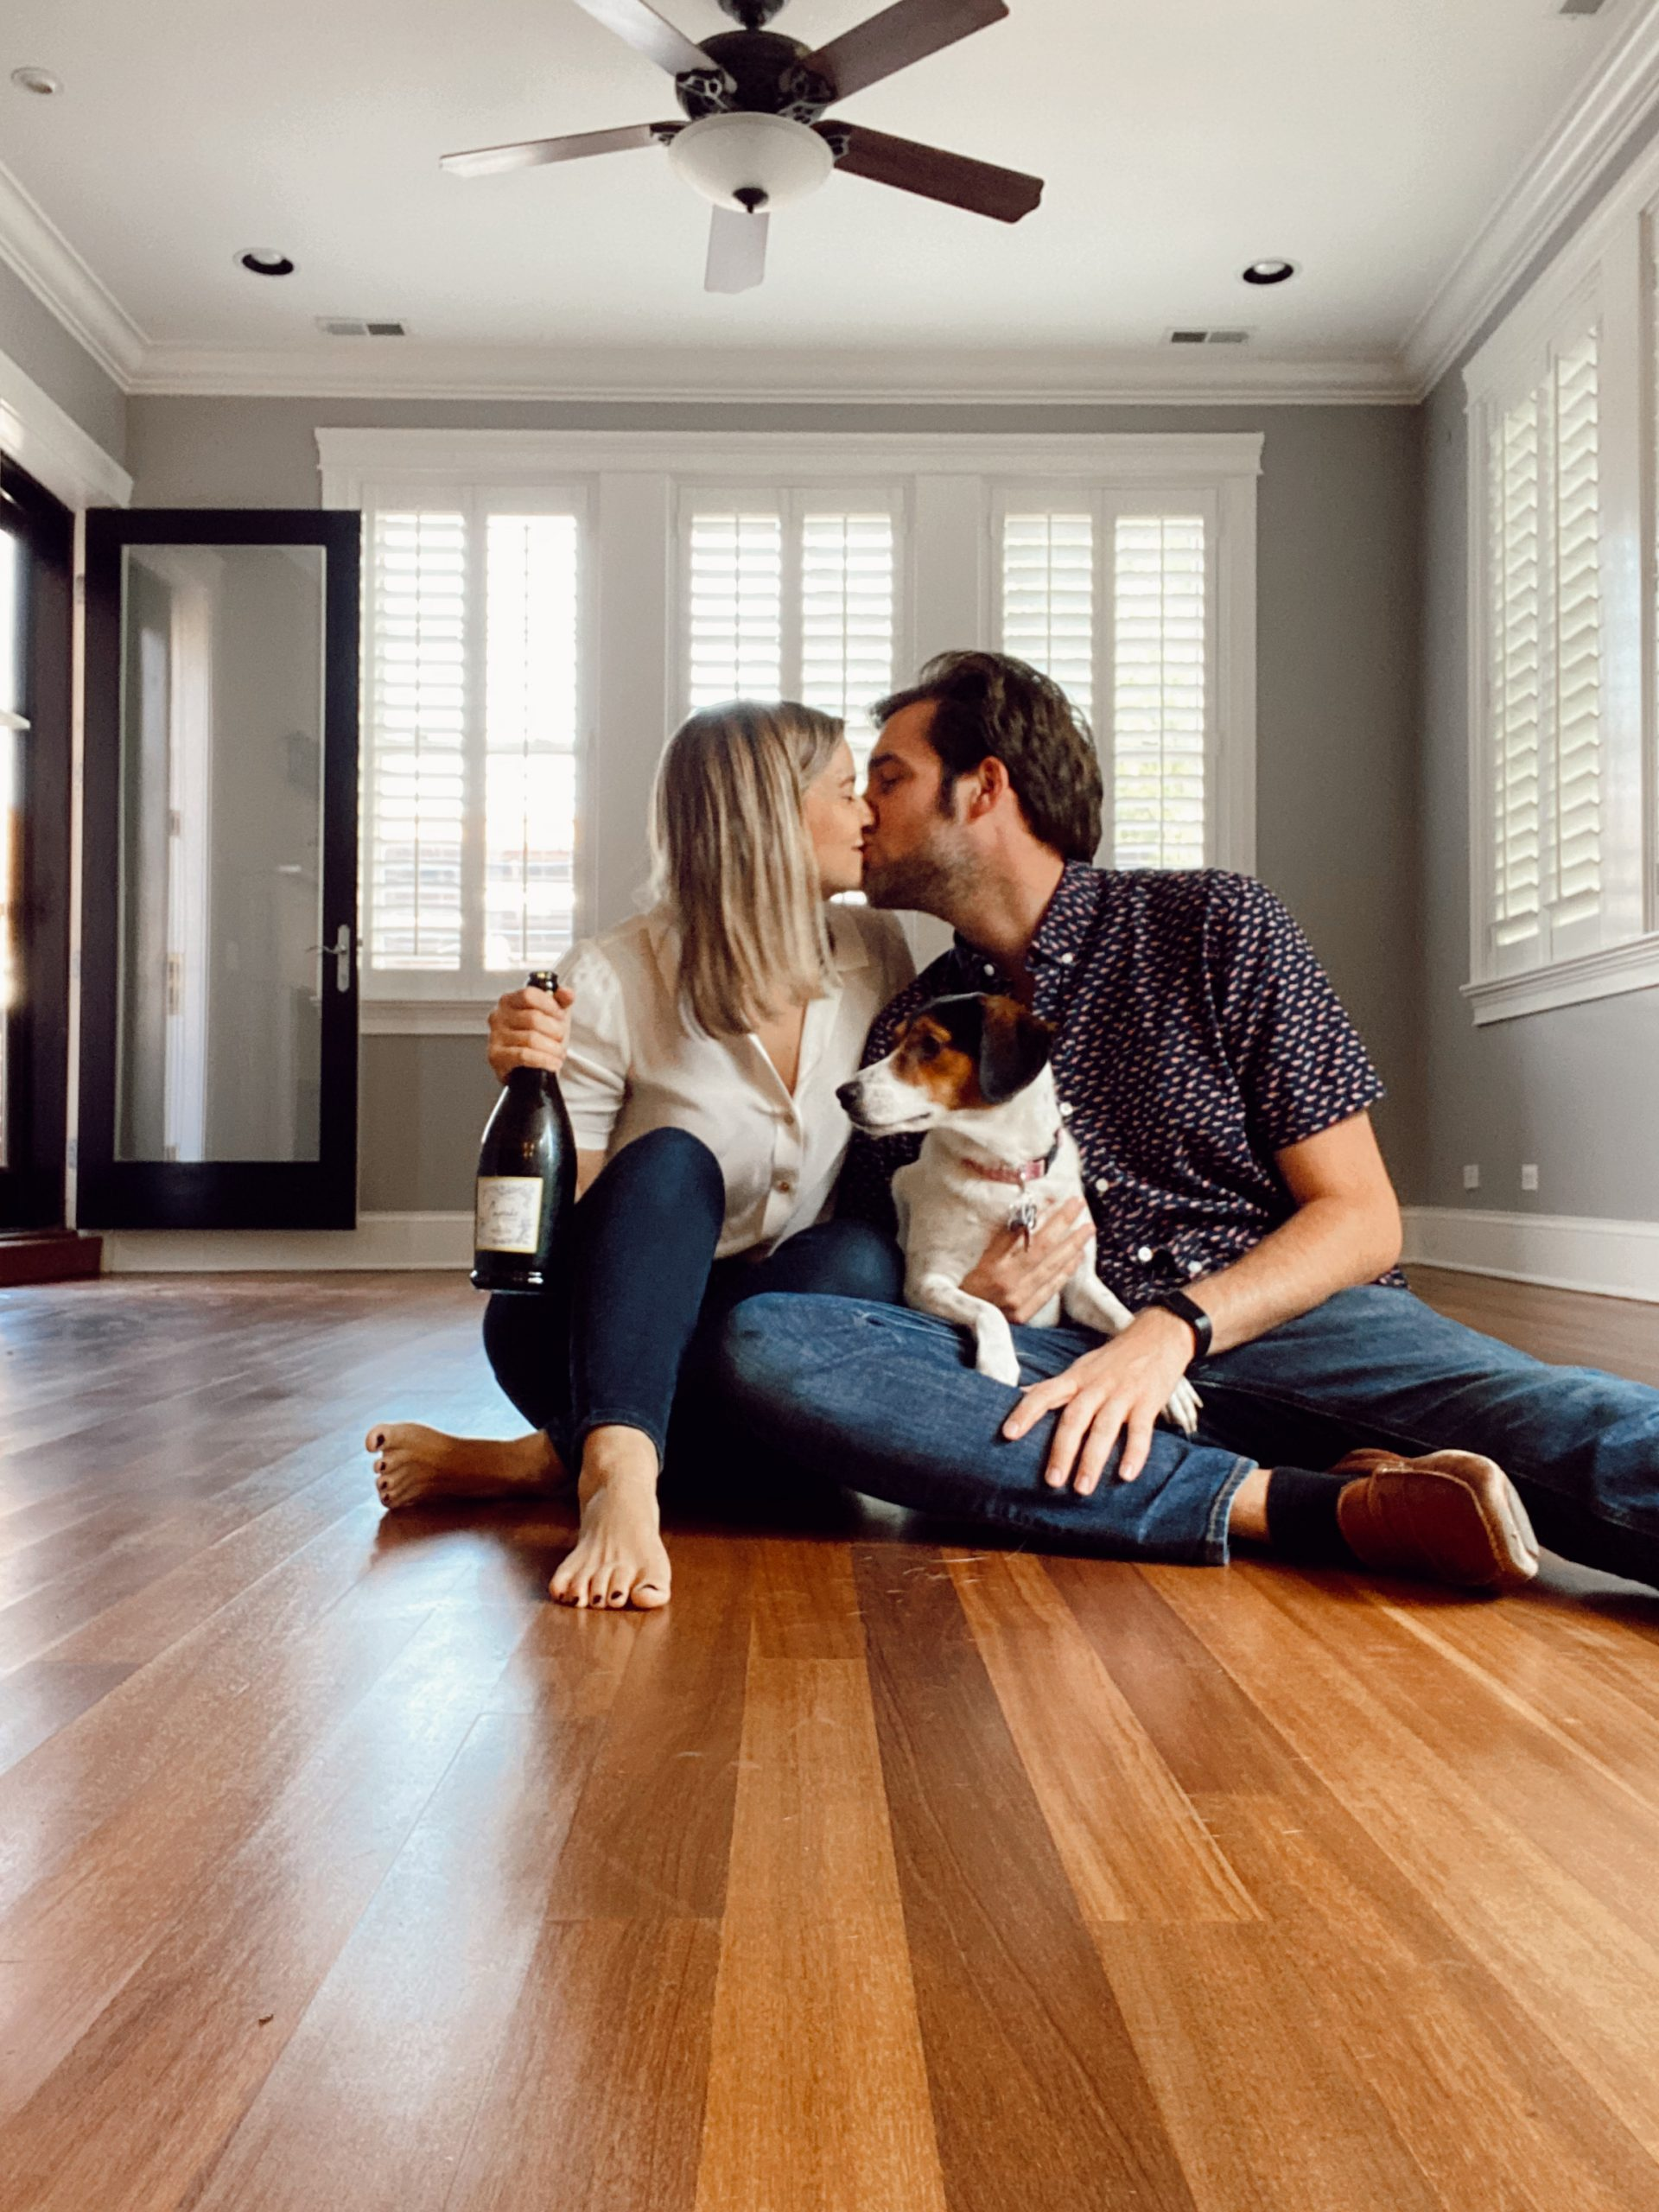 We're homeowners! (+ Advice For First Time Home Buyers)